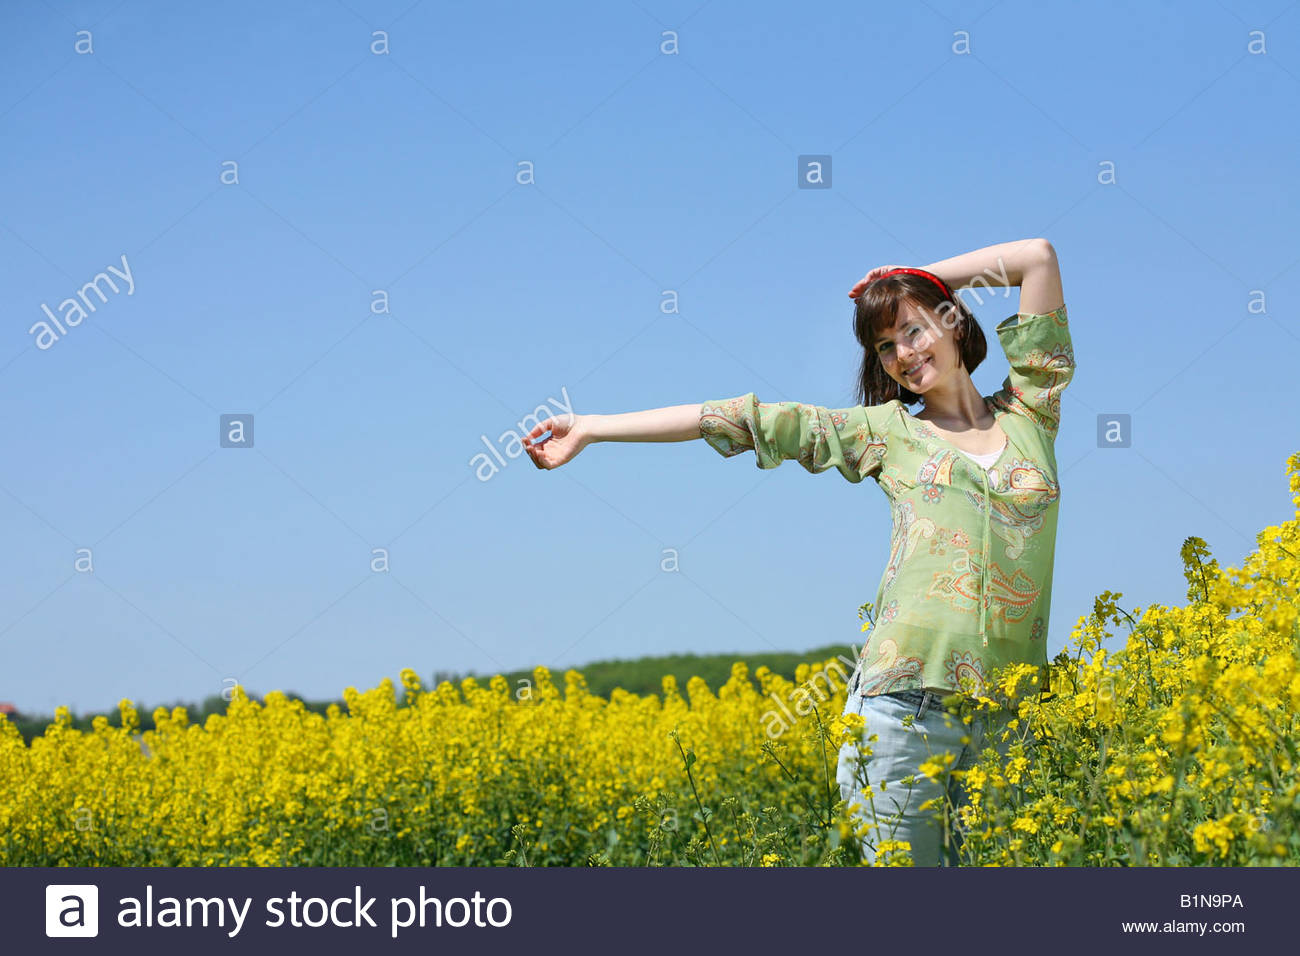 woman sprawled out her arms - Stock Image